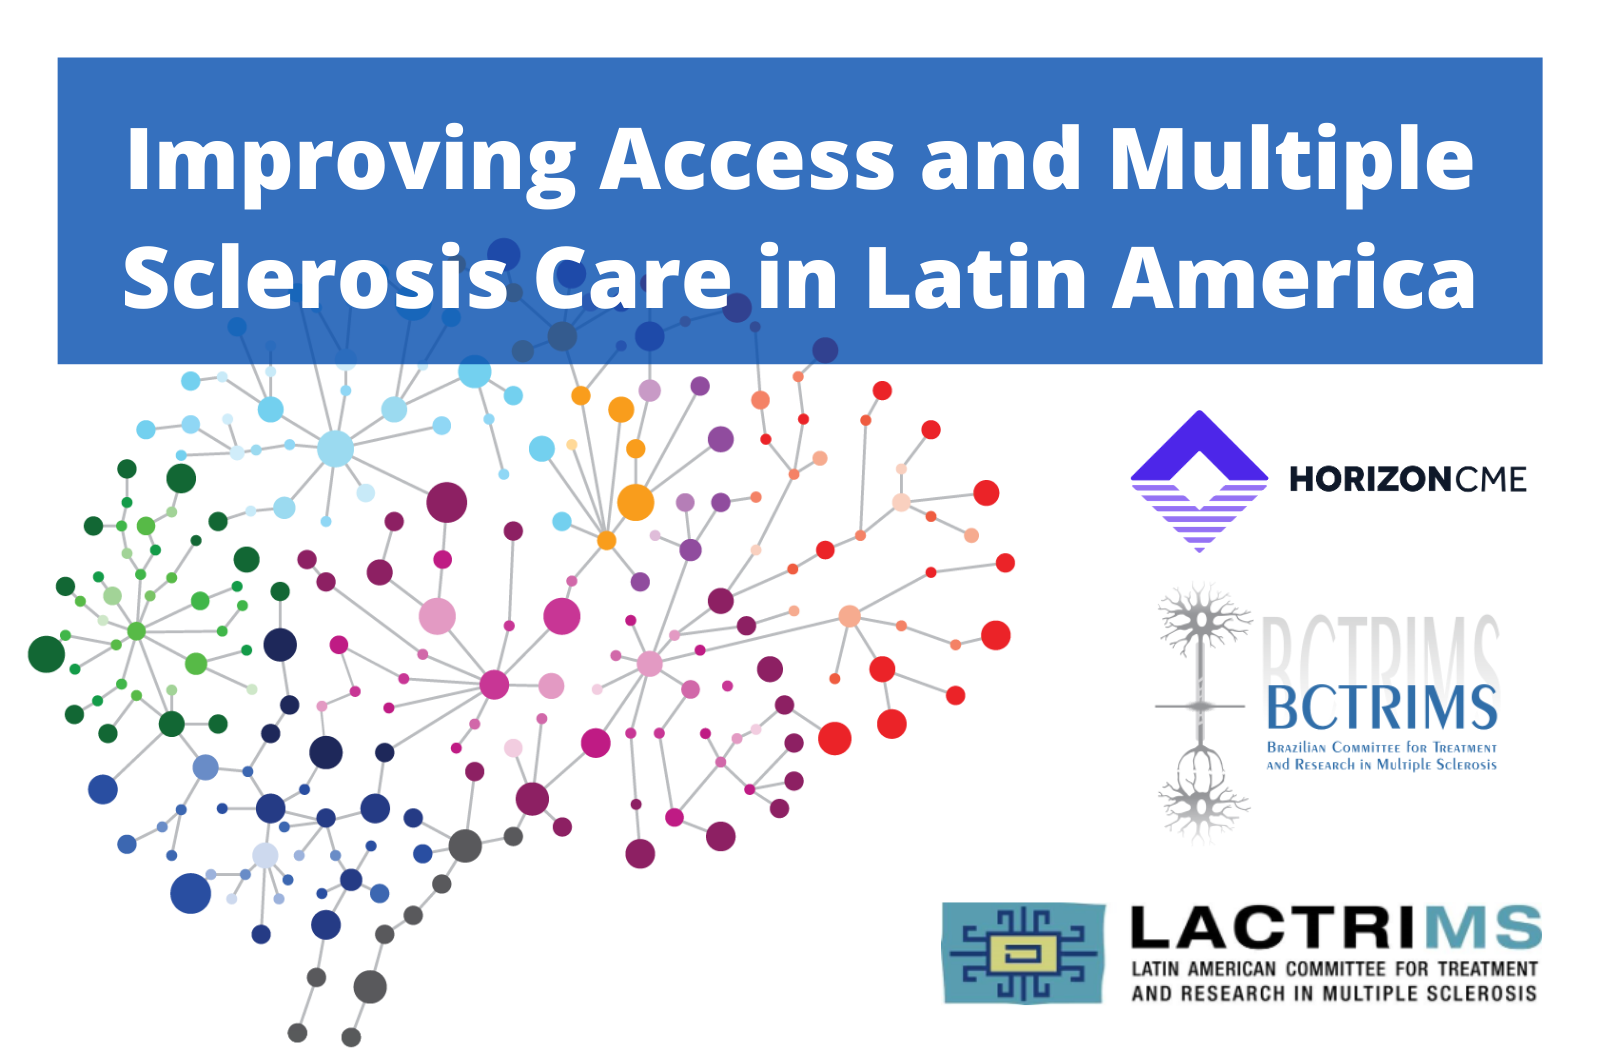 Improving Access and Multiple Sclerosis Care in Latin America